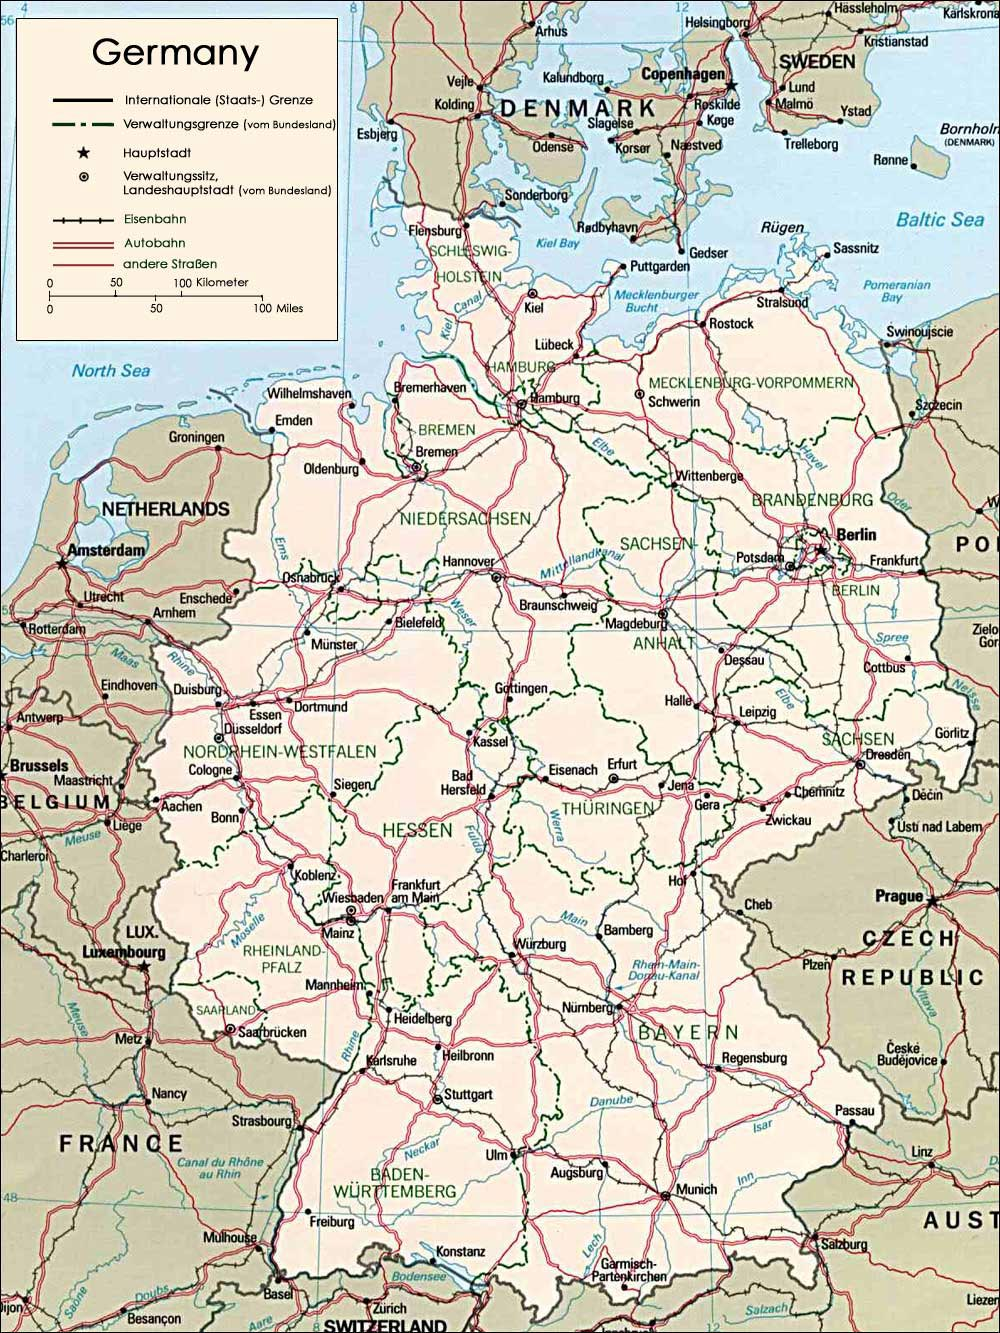 Map Of Germany To Print.Germany Maps Printable Maps Of Germany For Download